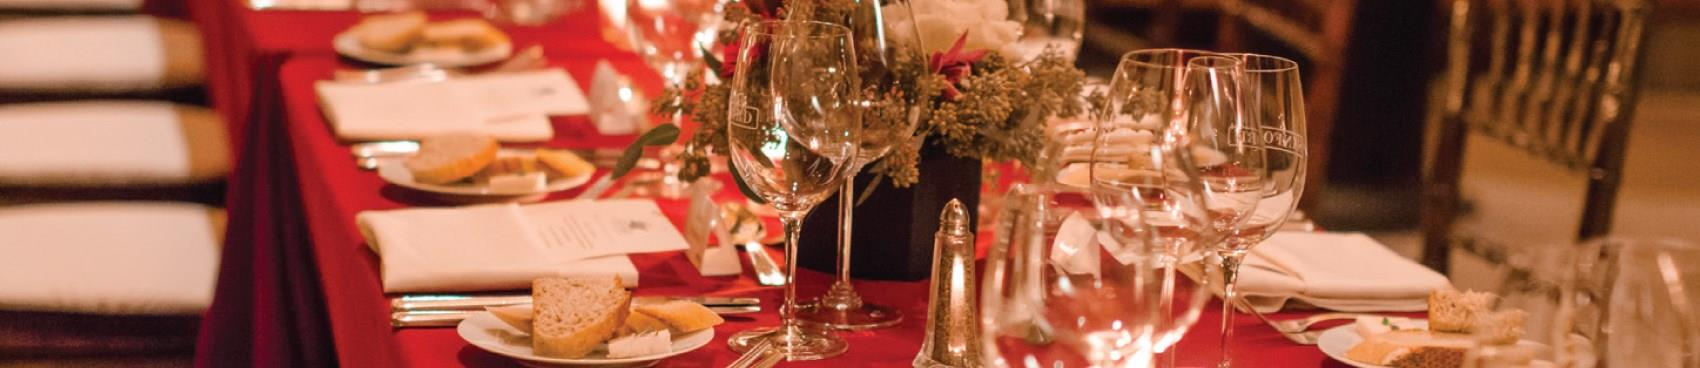 Purchase Tickets to Sanford Winemaker Holiday Dinner at Sanford Winery on CellarPass